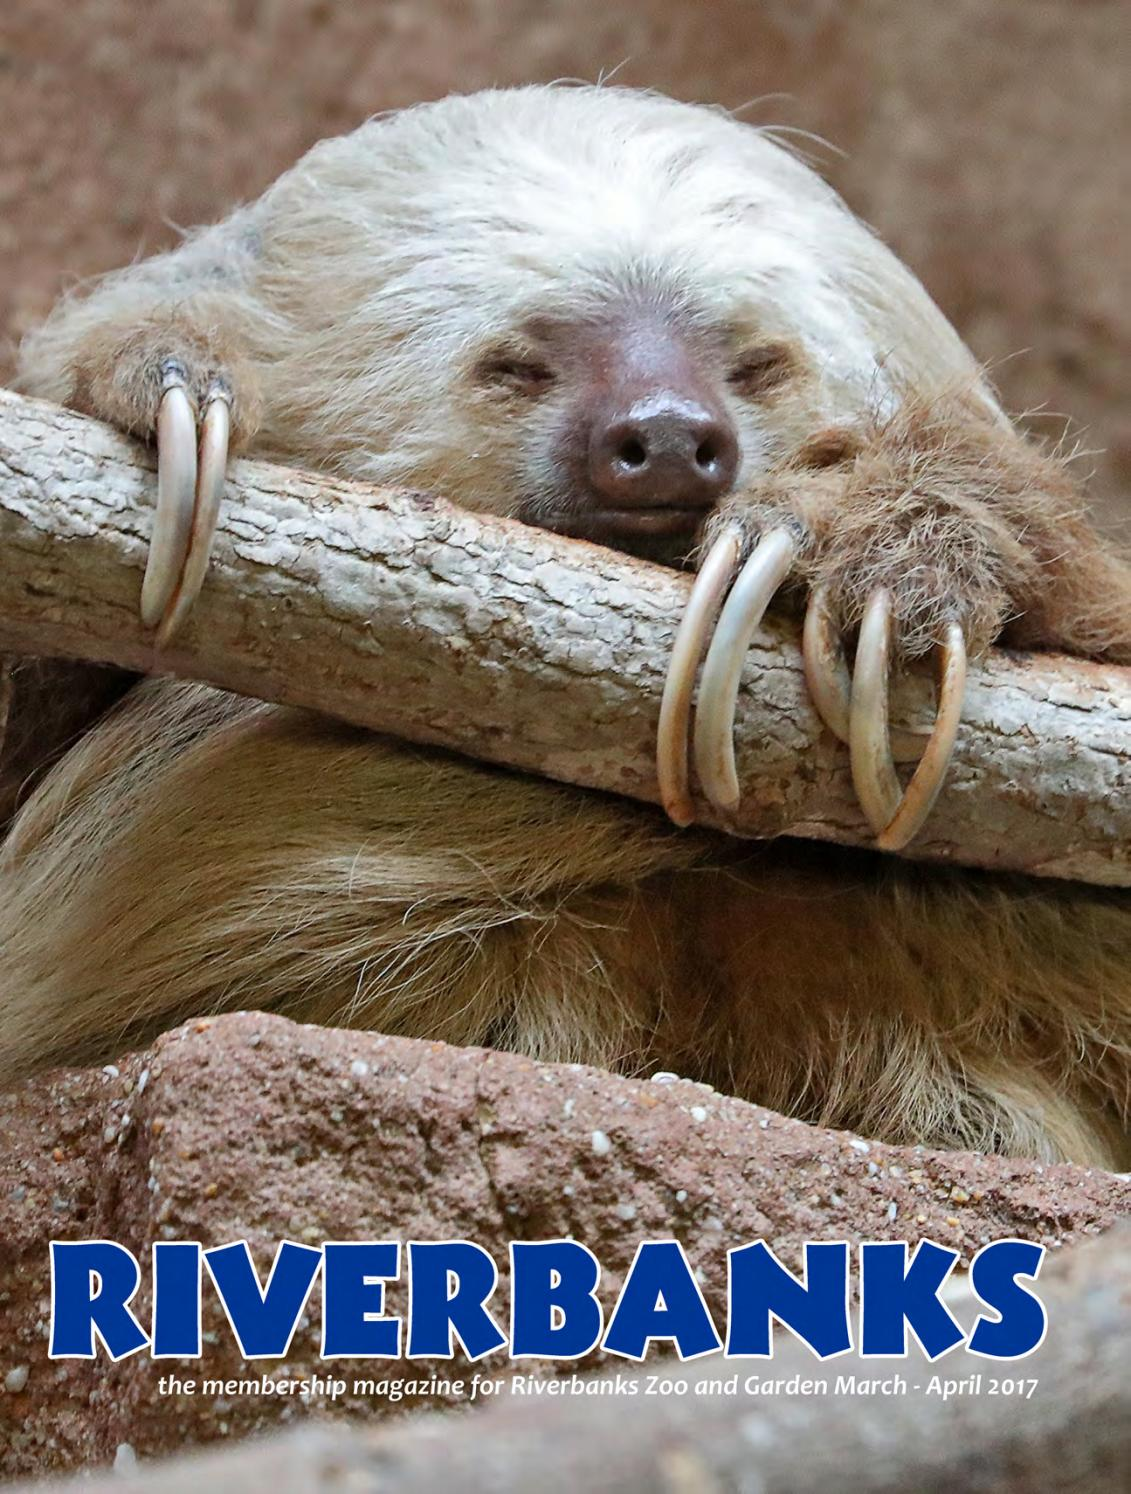 Riverbanks magazine - March/April 2017 by Riverbanks Zoo and Garden ...